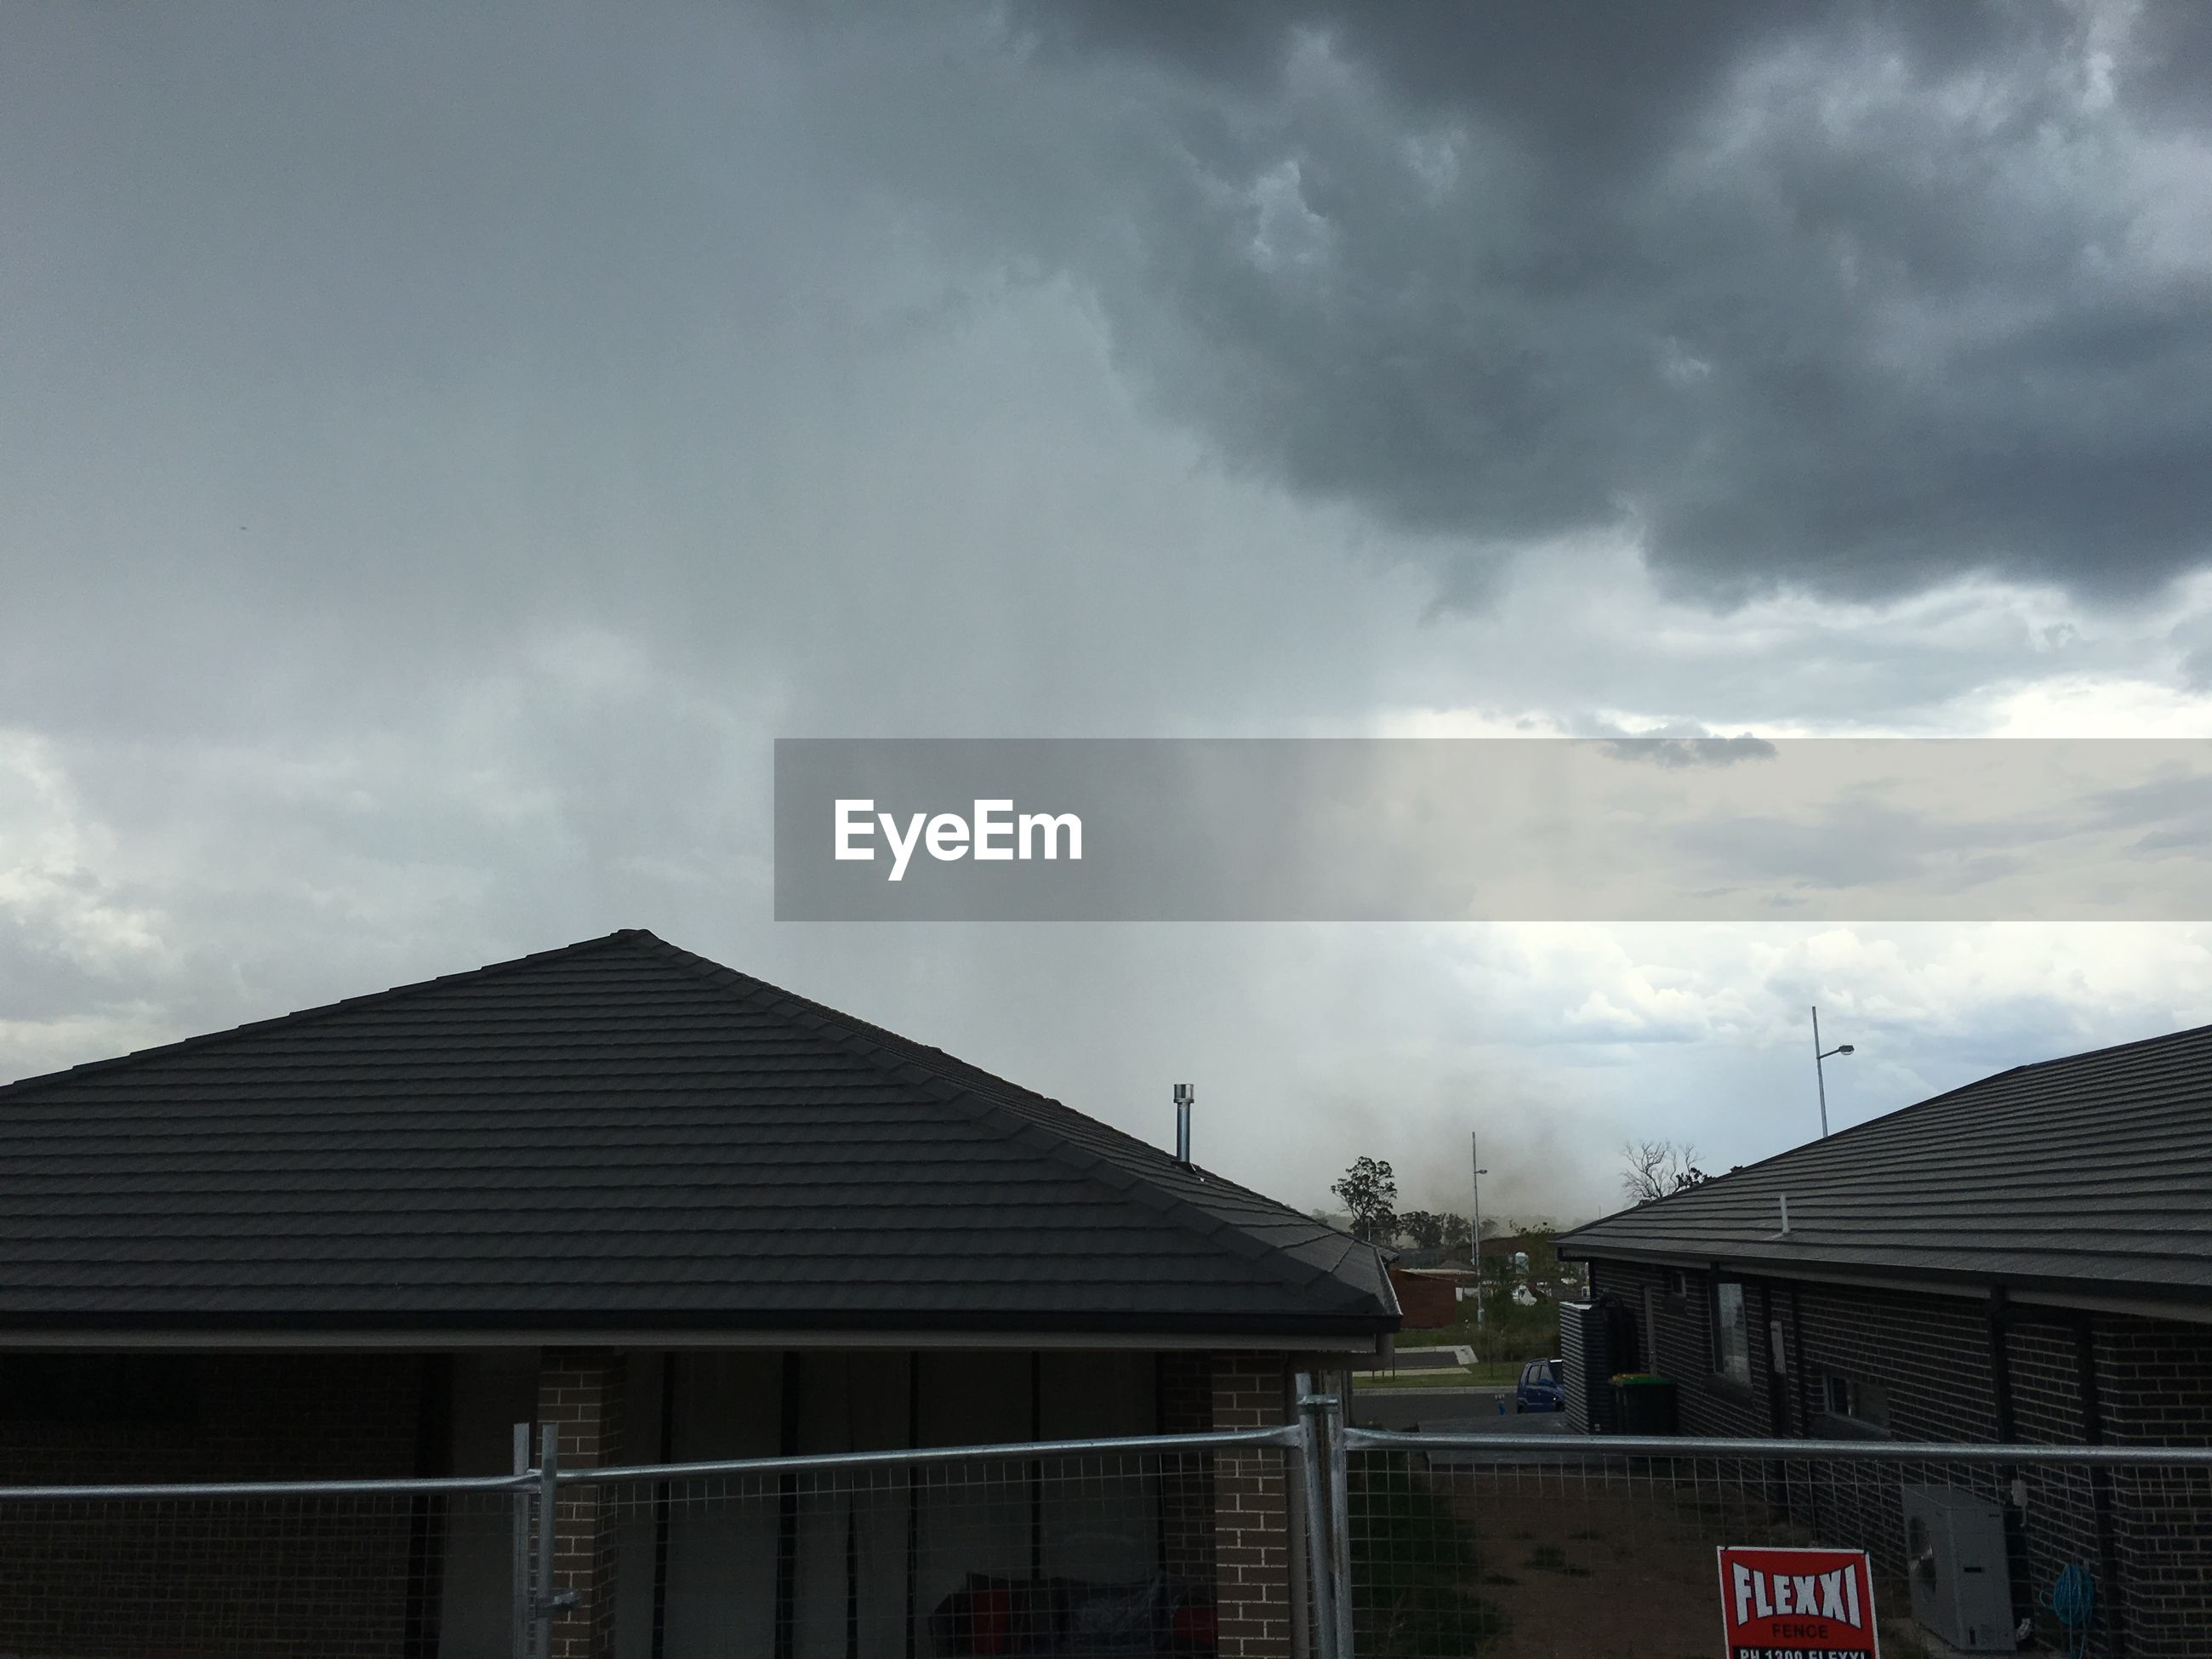 building exterior, sky, architecture, built structure, cloud - sky, cloudy, low angle view, cloud, overcast, weather, house, outdoors, building, city, storm cloud, roof, no people, high section, day, residential building